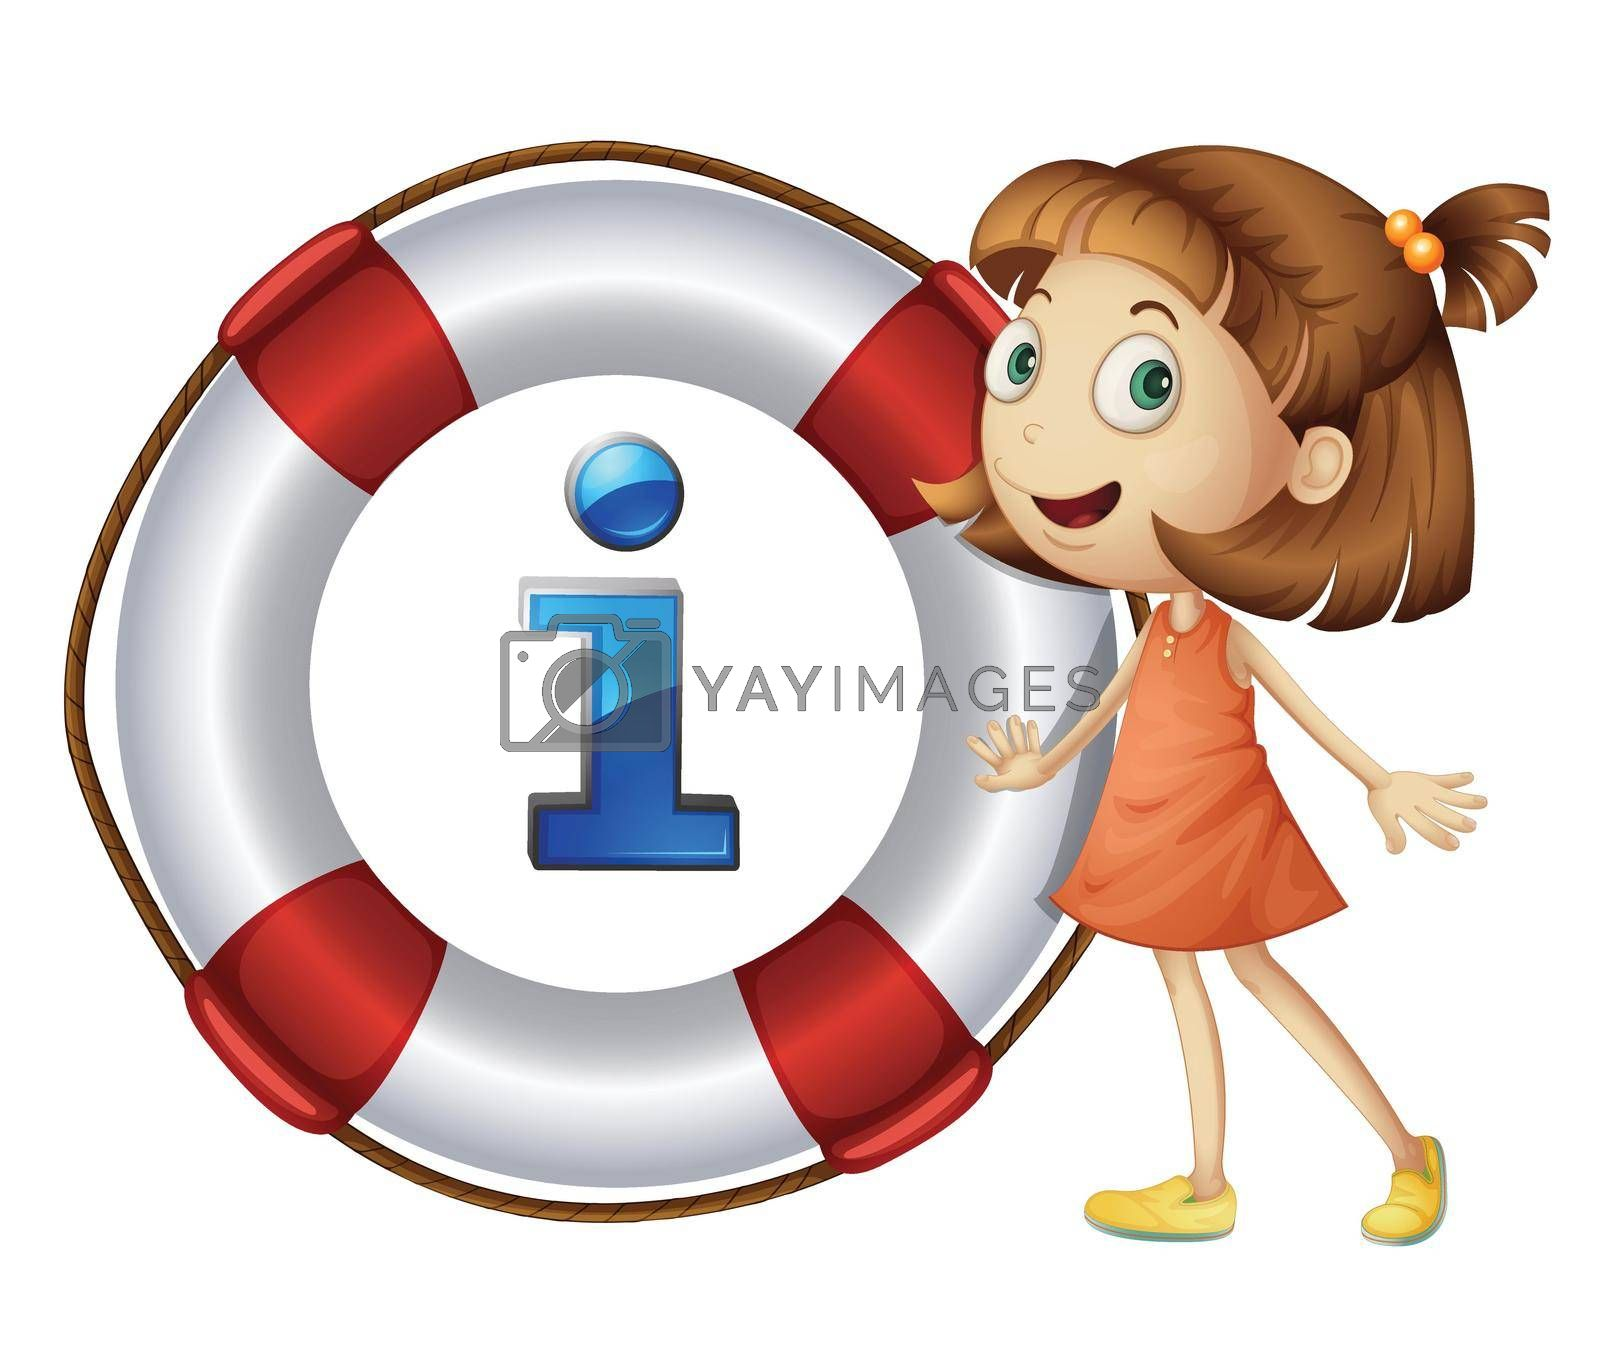 Illustration of girl and information icon